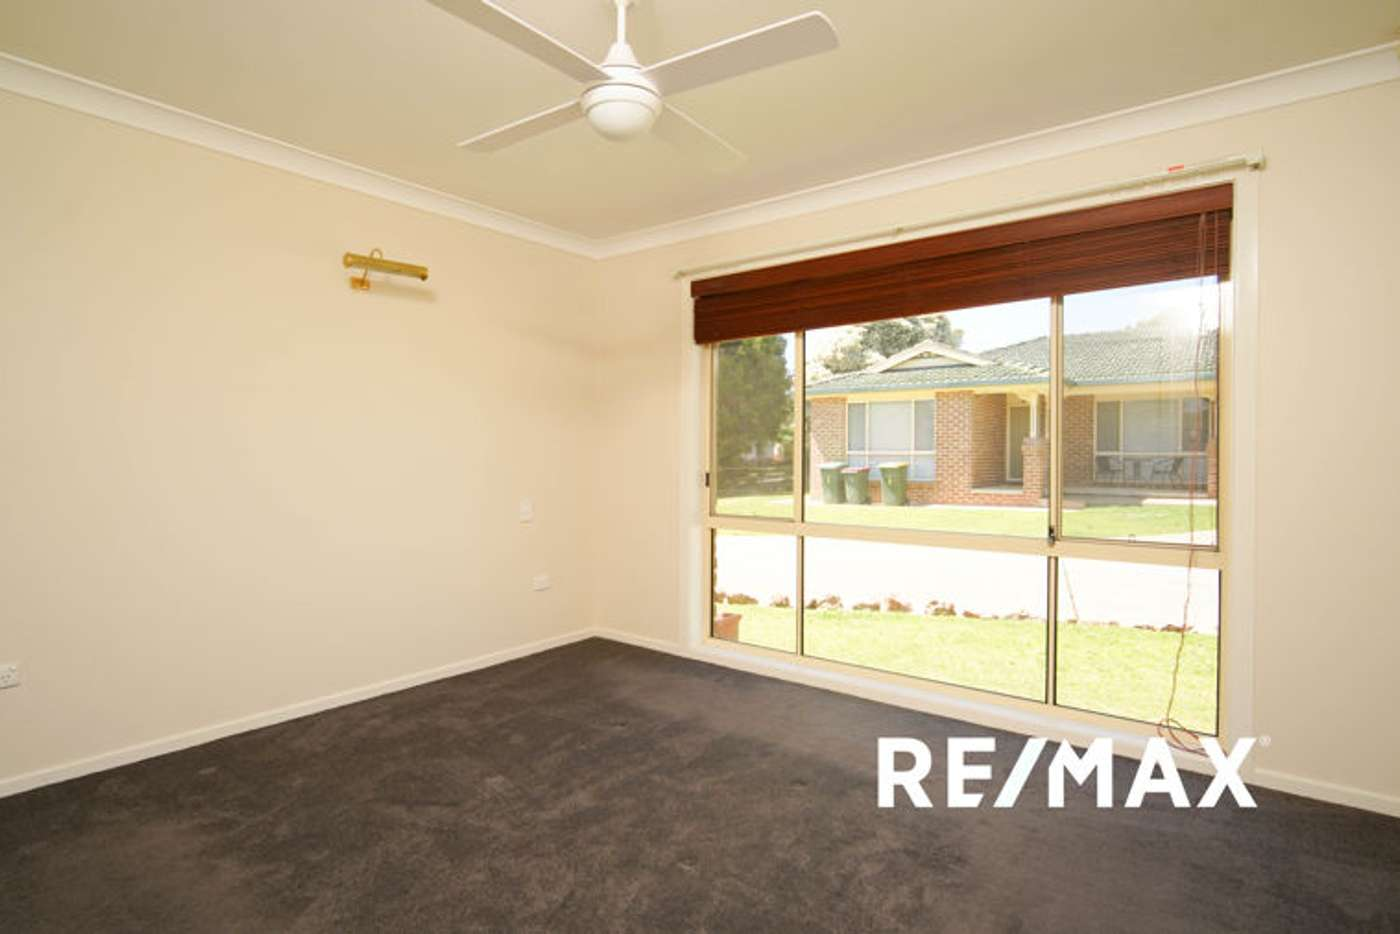 Seventh view of Homely house listing, 8/95 Balleroo Crescent, Glenfield Park NSW 2650